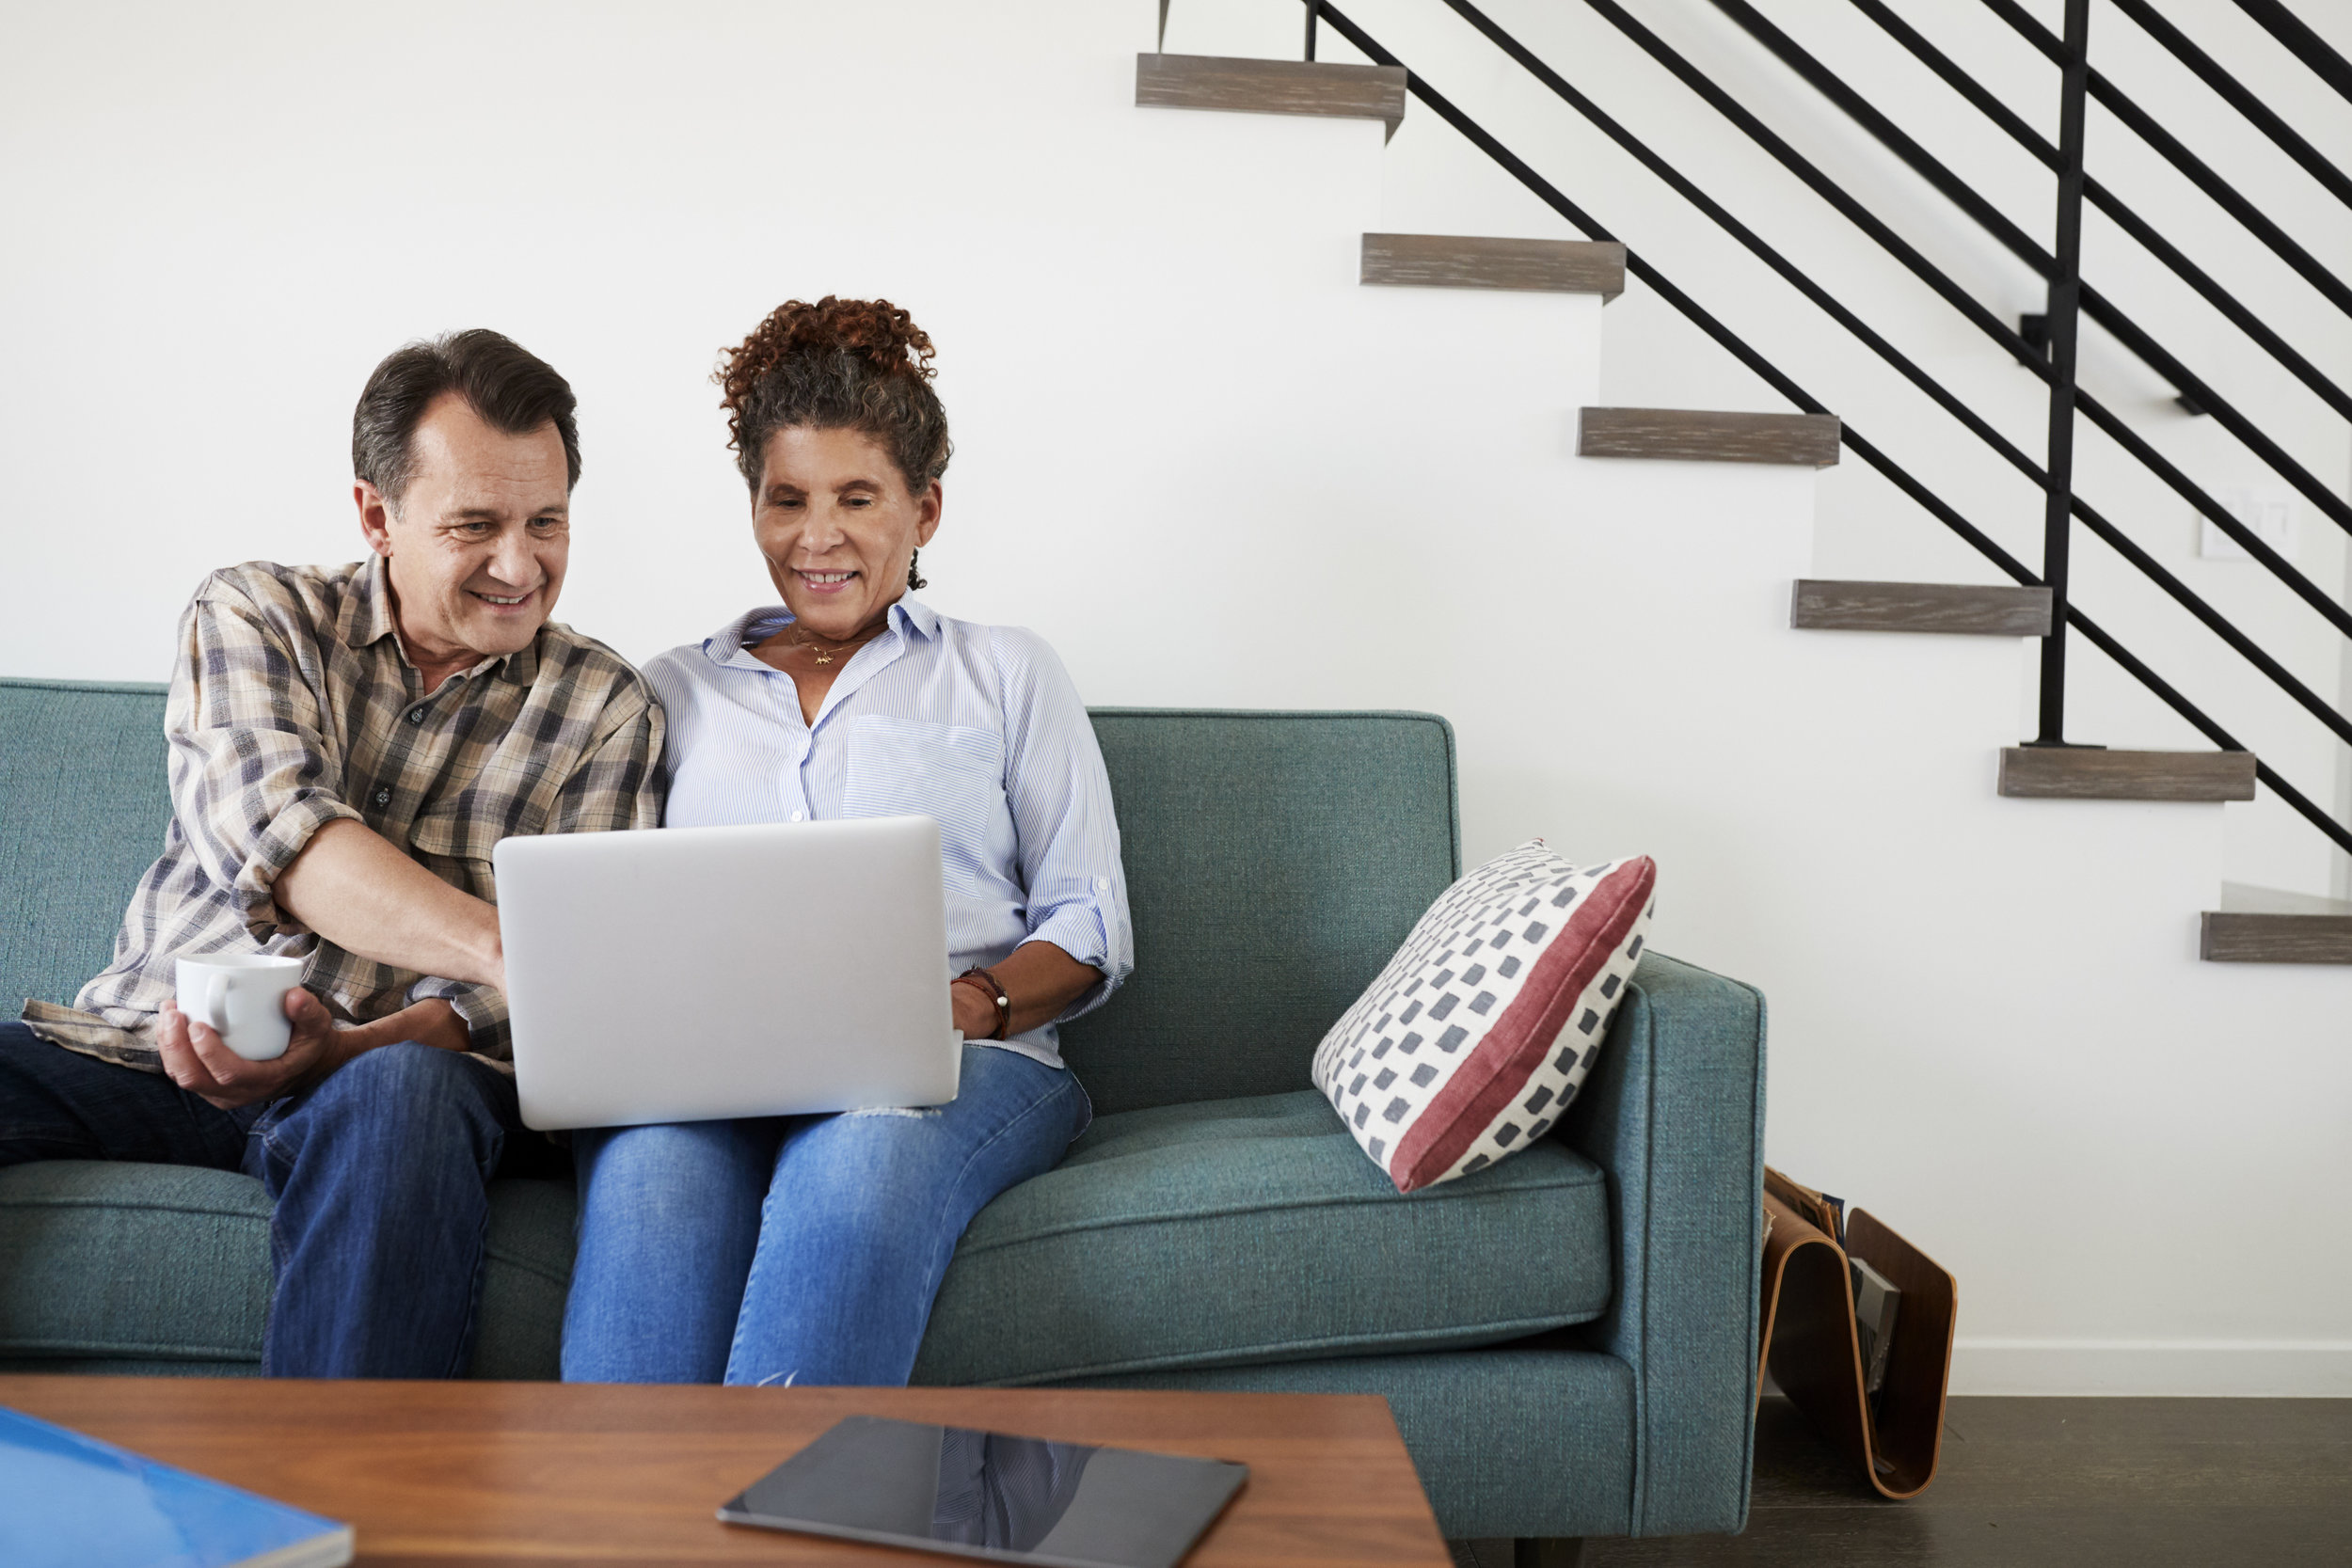 senior-couple-sitting-on-sofa-at-home-using-GSULYQB.jpg